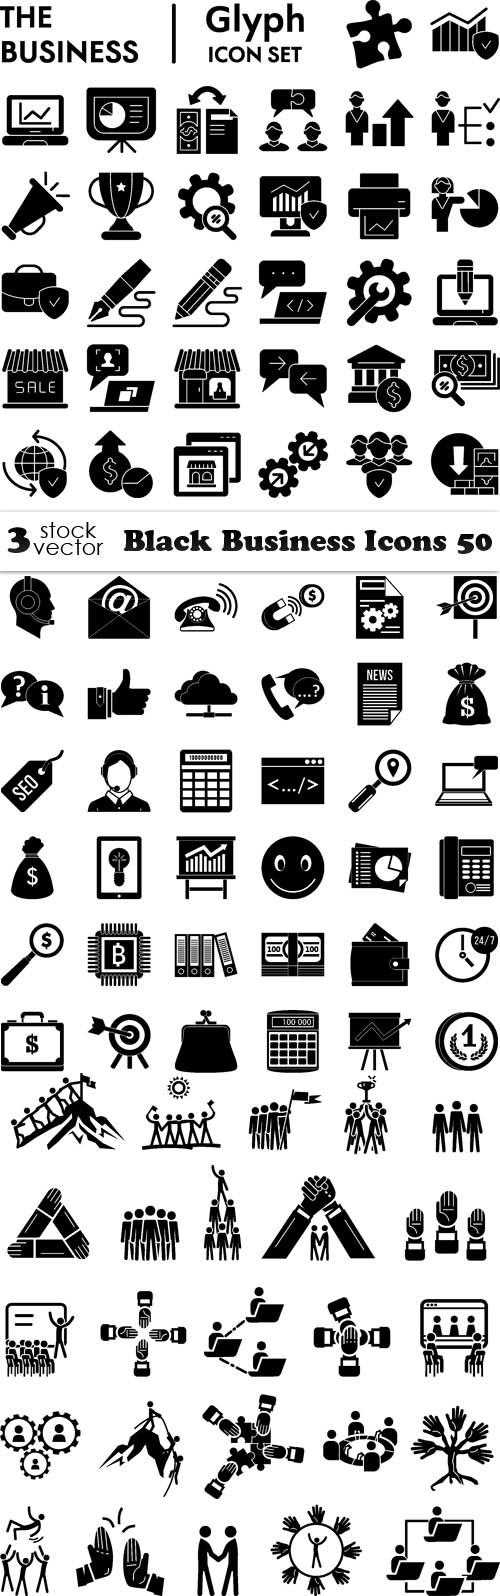 Black Business Icons 50